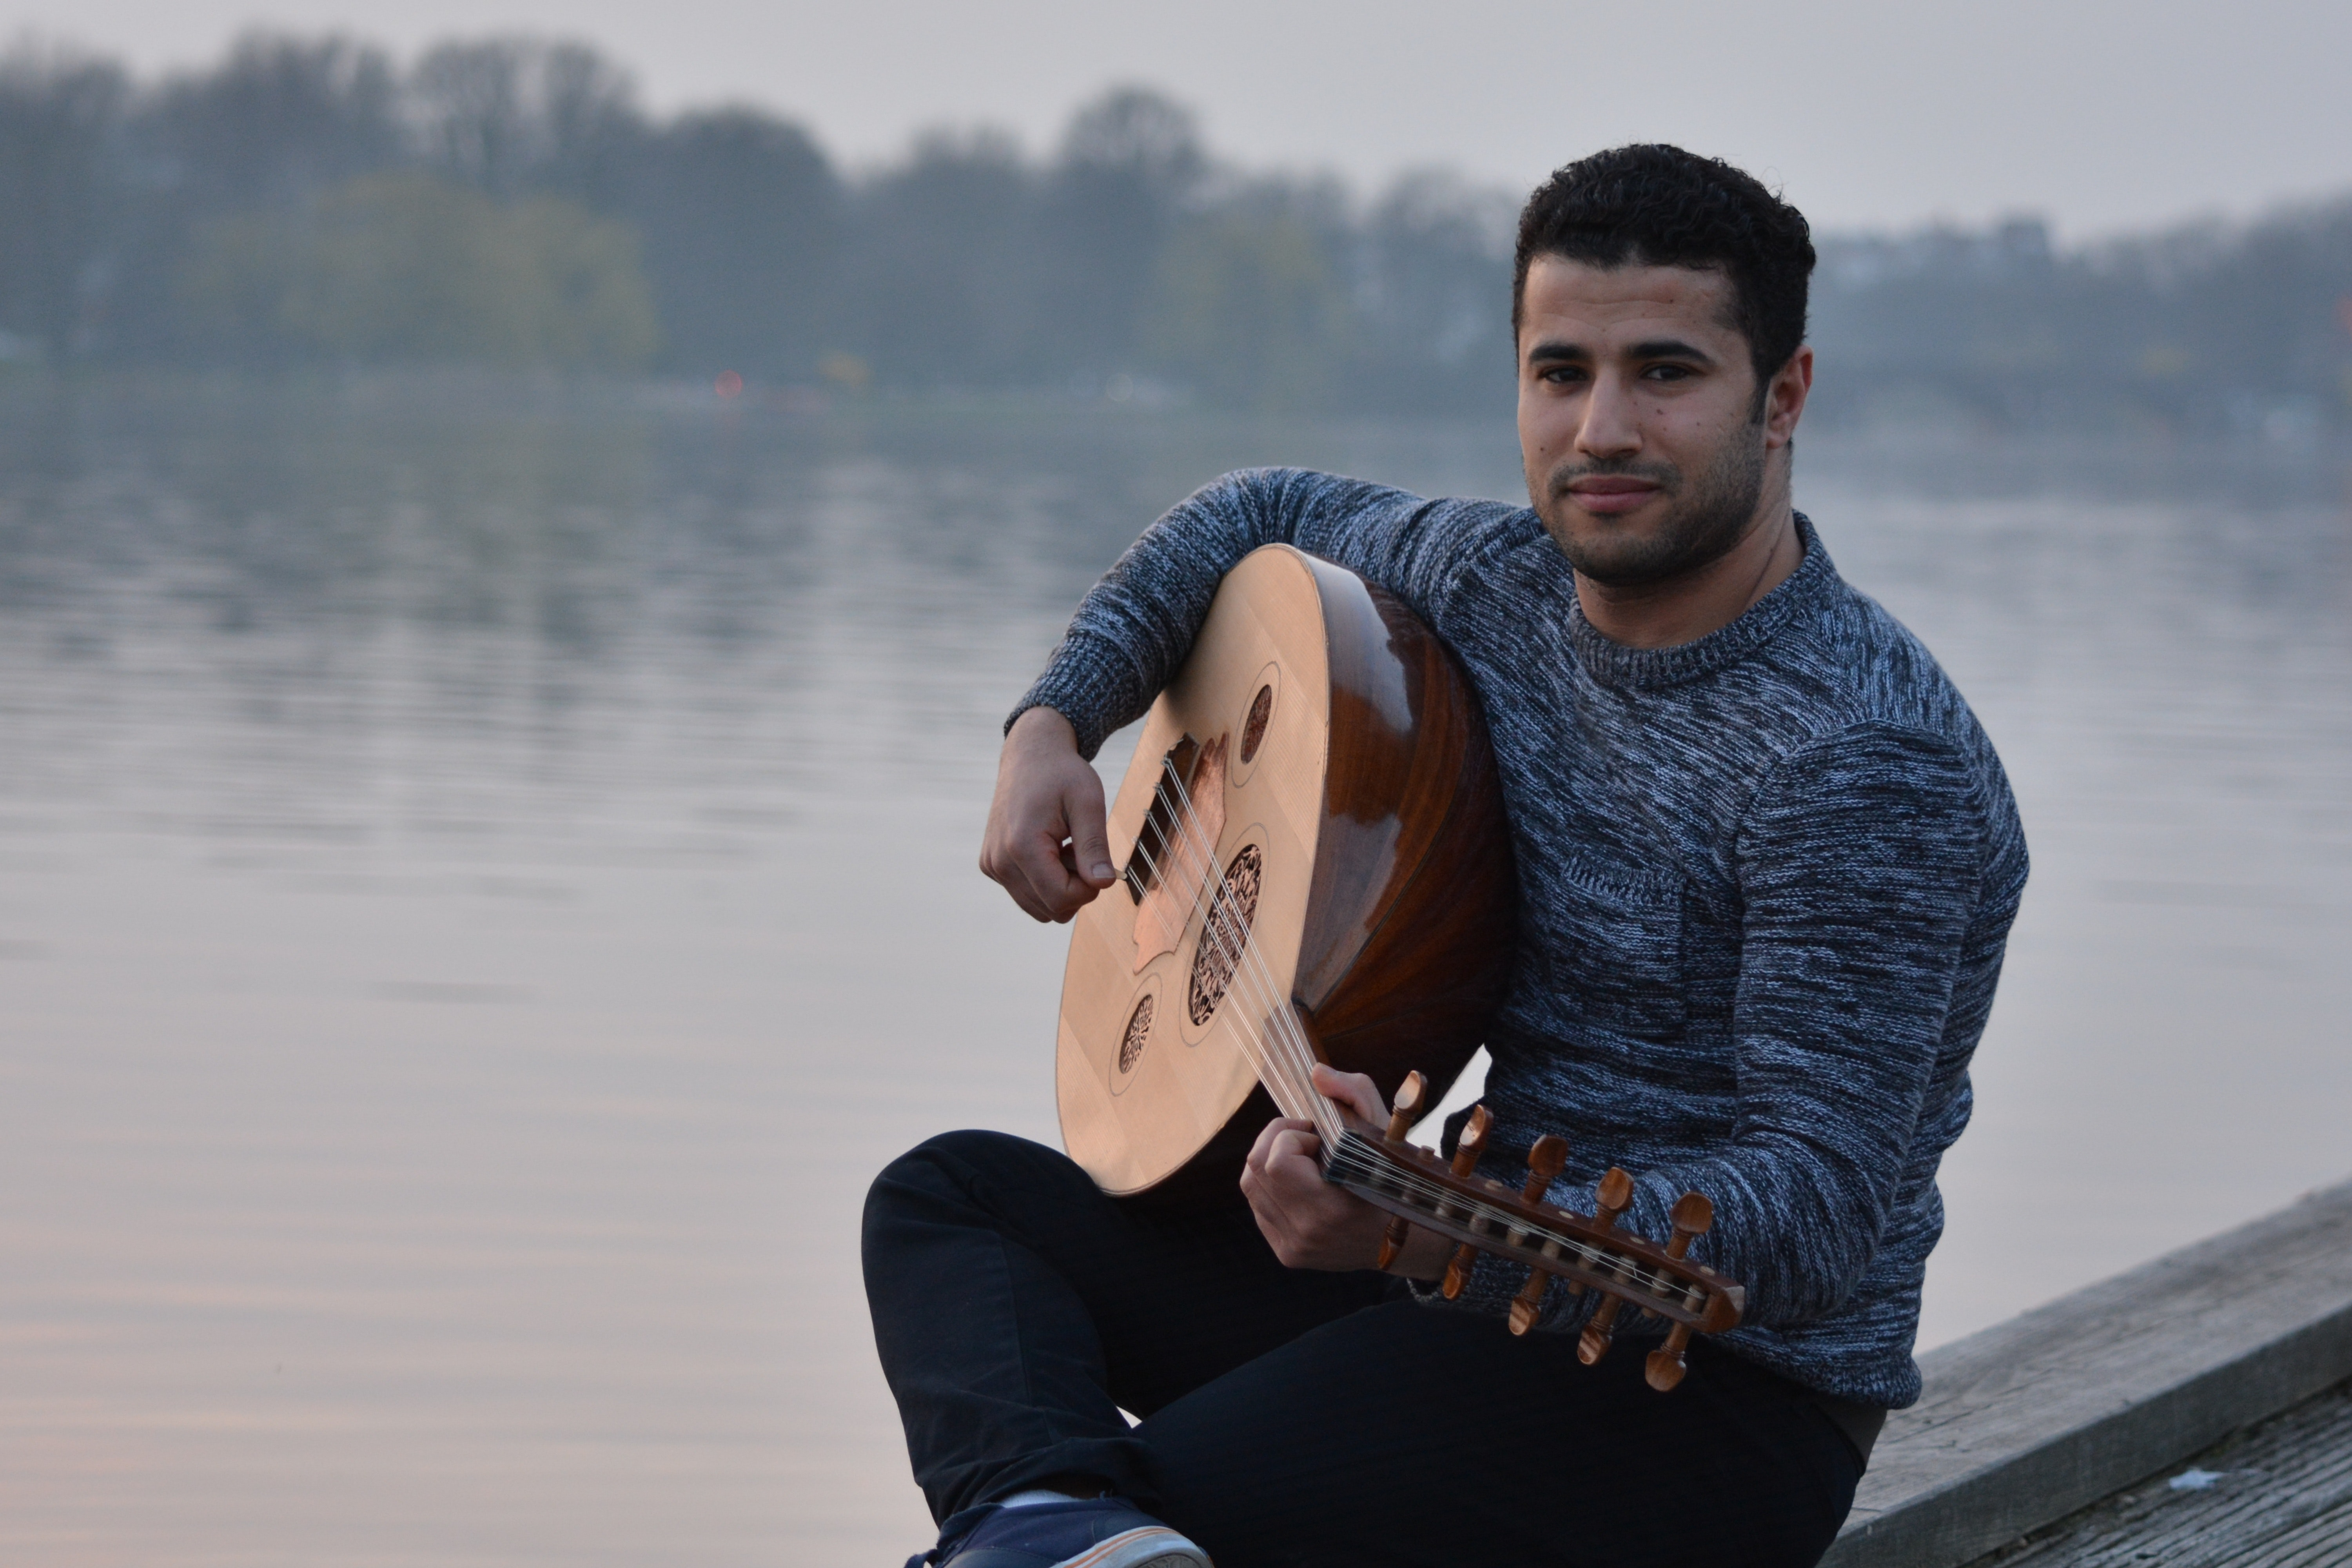 Man in gray crew neck sweatshirt and black pants sitting in gray concrete holding string instrument near body of water photo